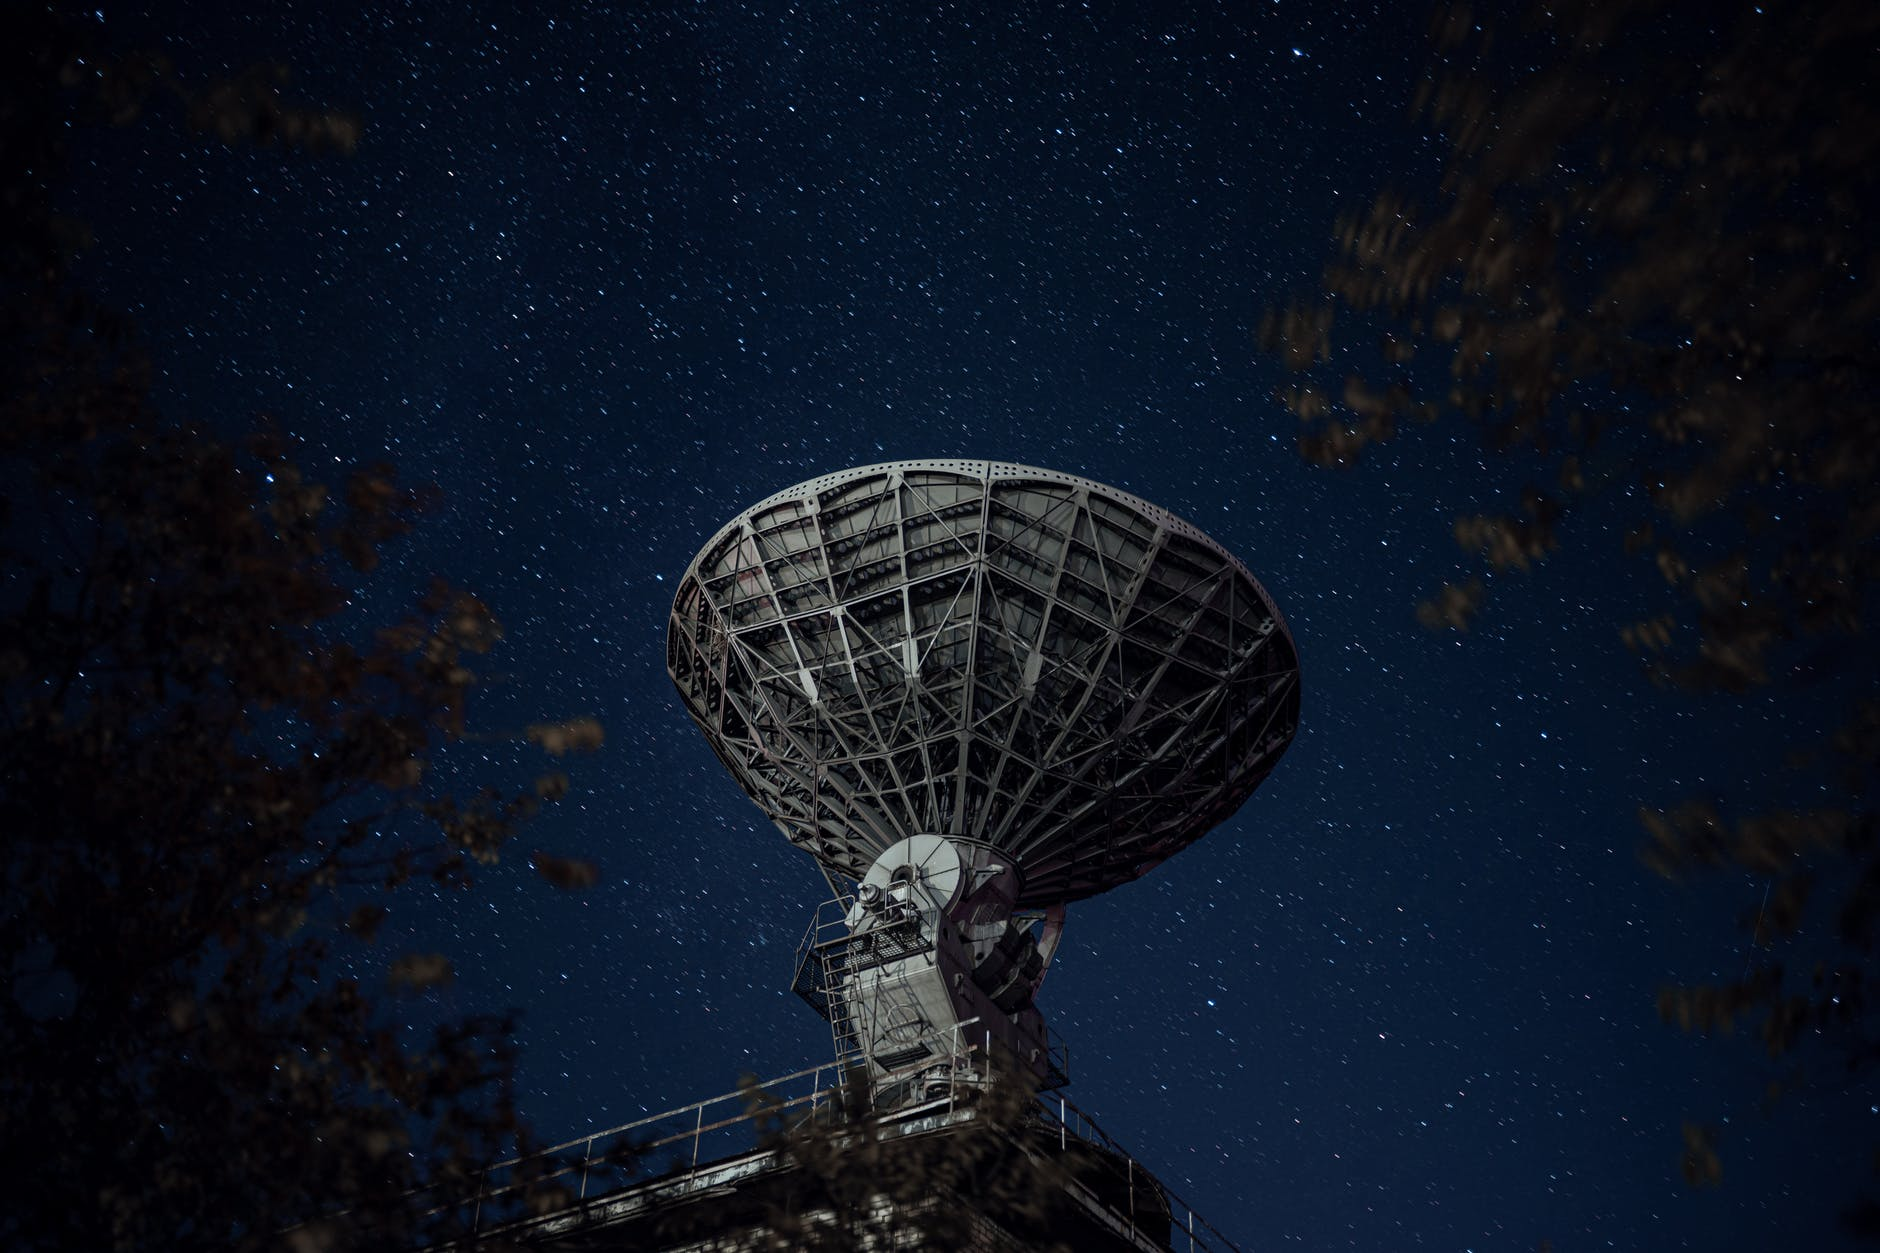 radio telescope against sky with stars